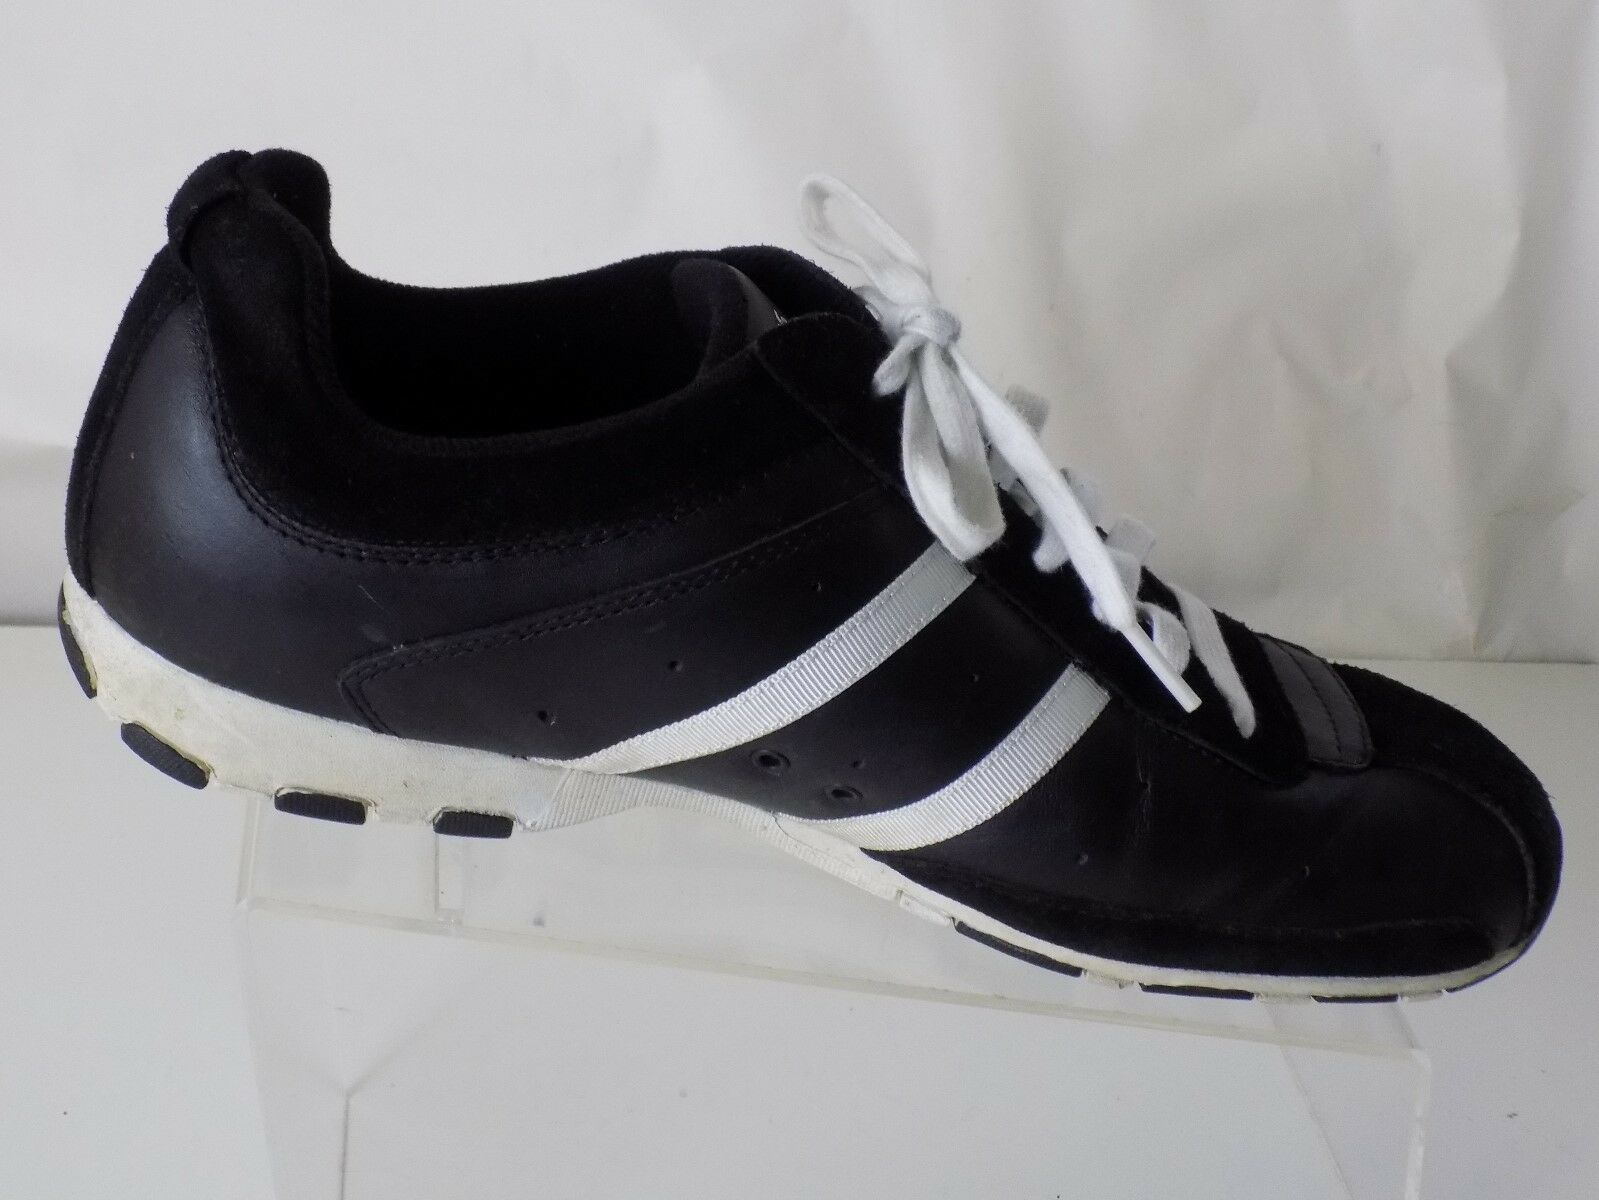 SKECHERS, LEATHER & ATHLETIC SUEDE, BLACK & WHITE, ATHLETIC & SHOES, MENS SIZE 11 15bef5